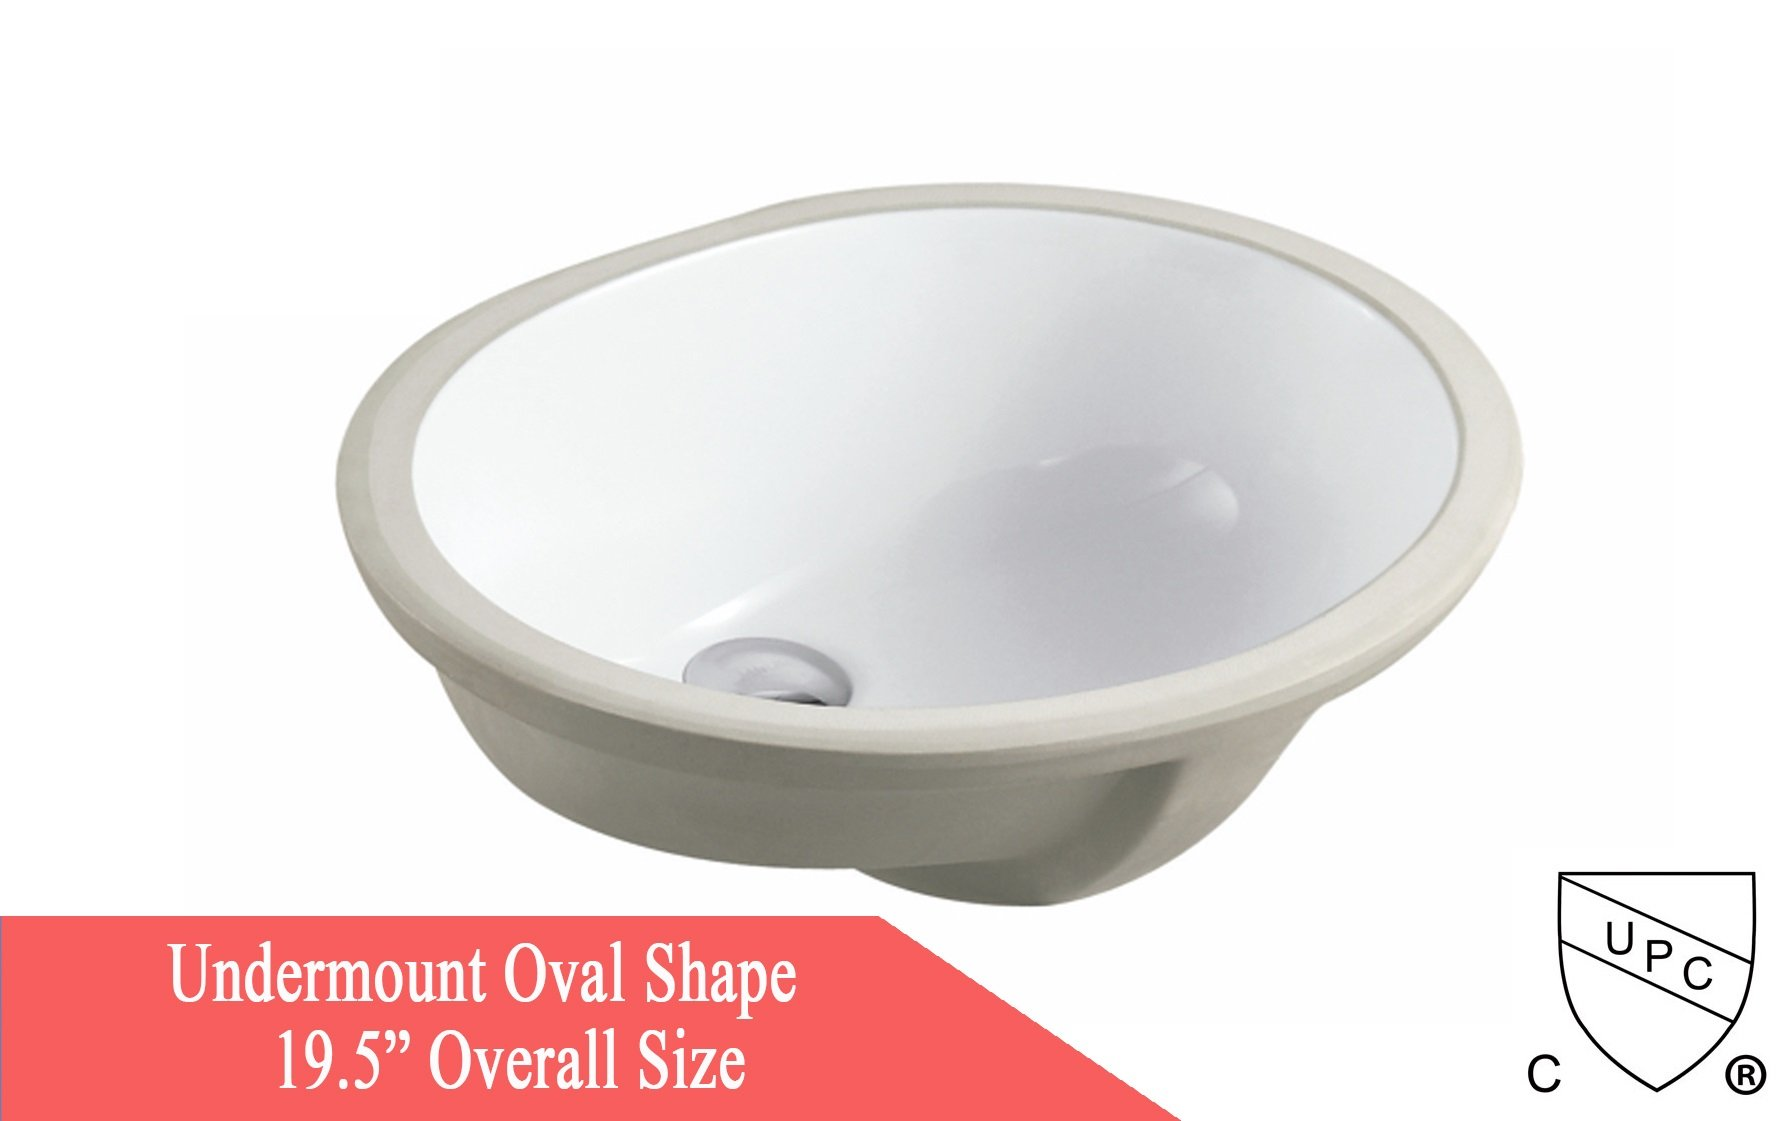 KINGSMAN Oval Undermount Vitreous Ceramic Lavatory Vanity Bathroom Sink Pure White (19.5 INCH)